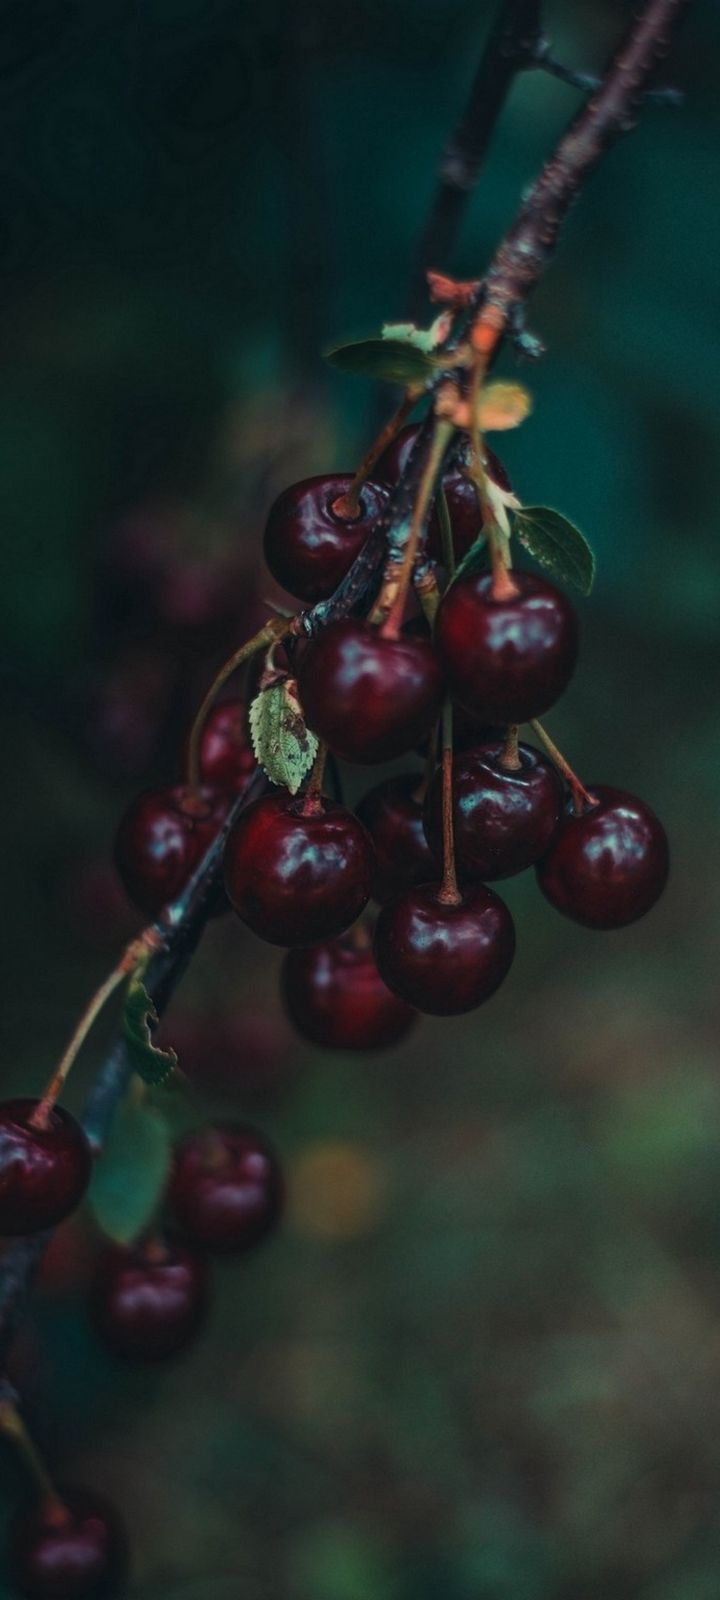 Cherries Berries Branch Wallpaper 720x1600